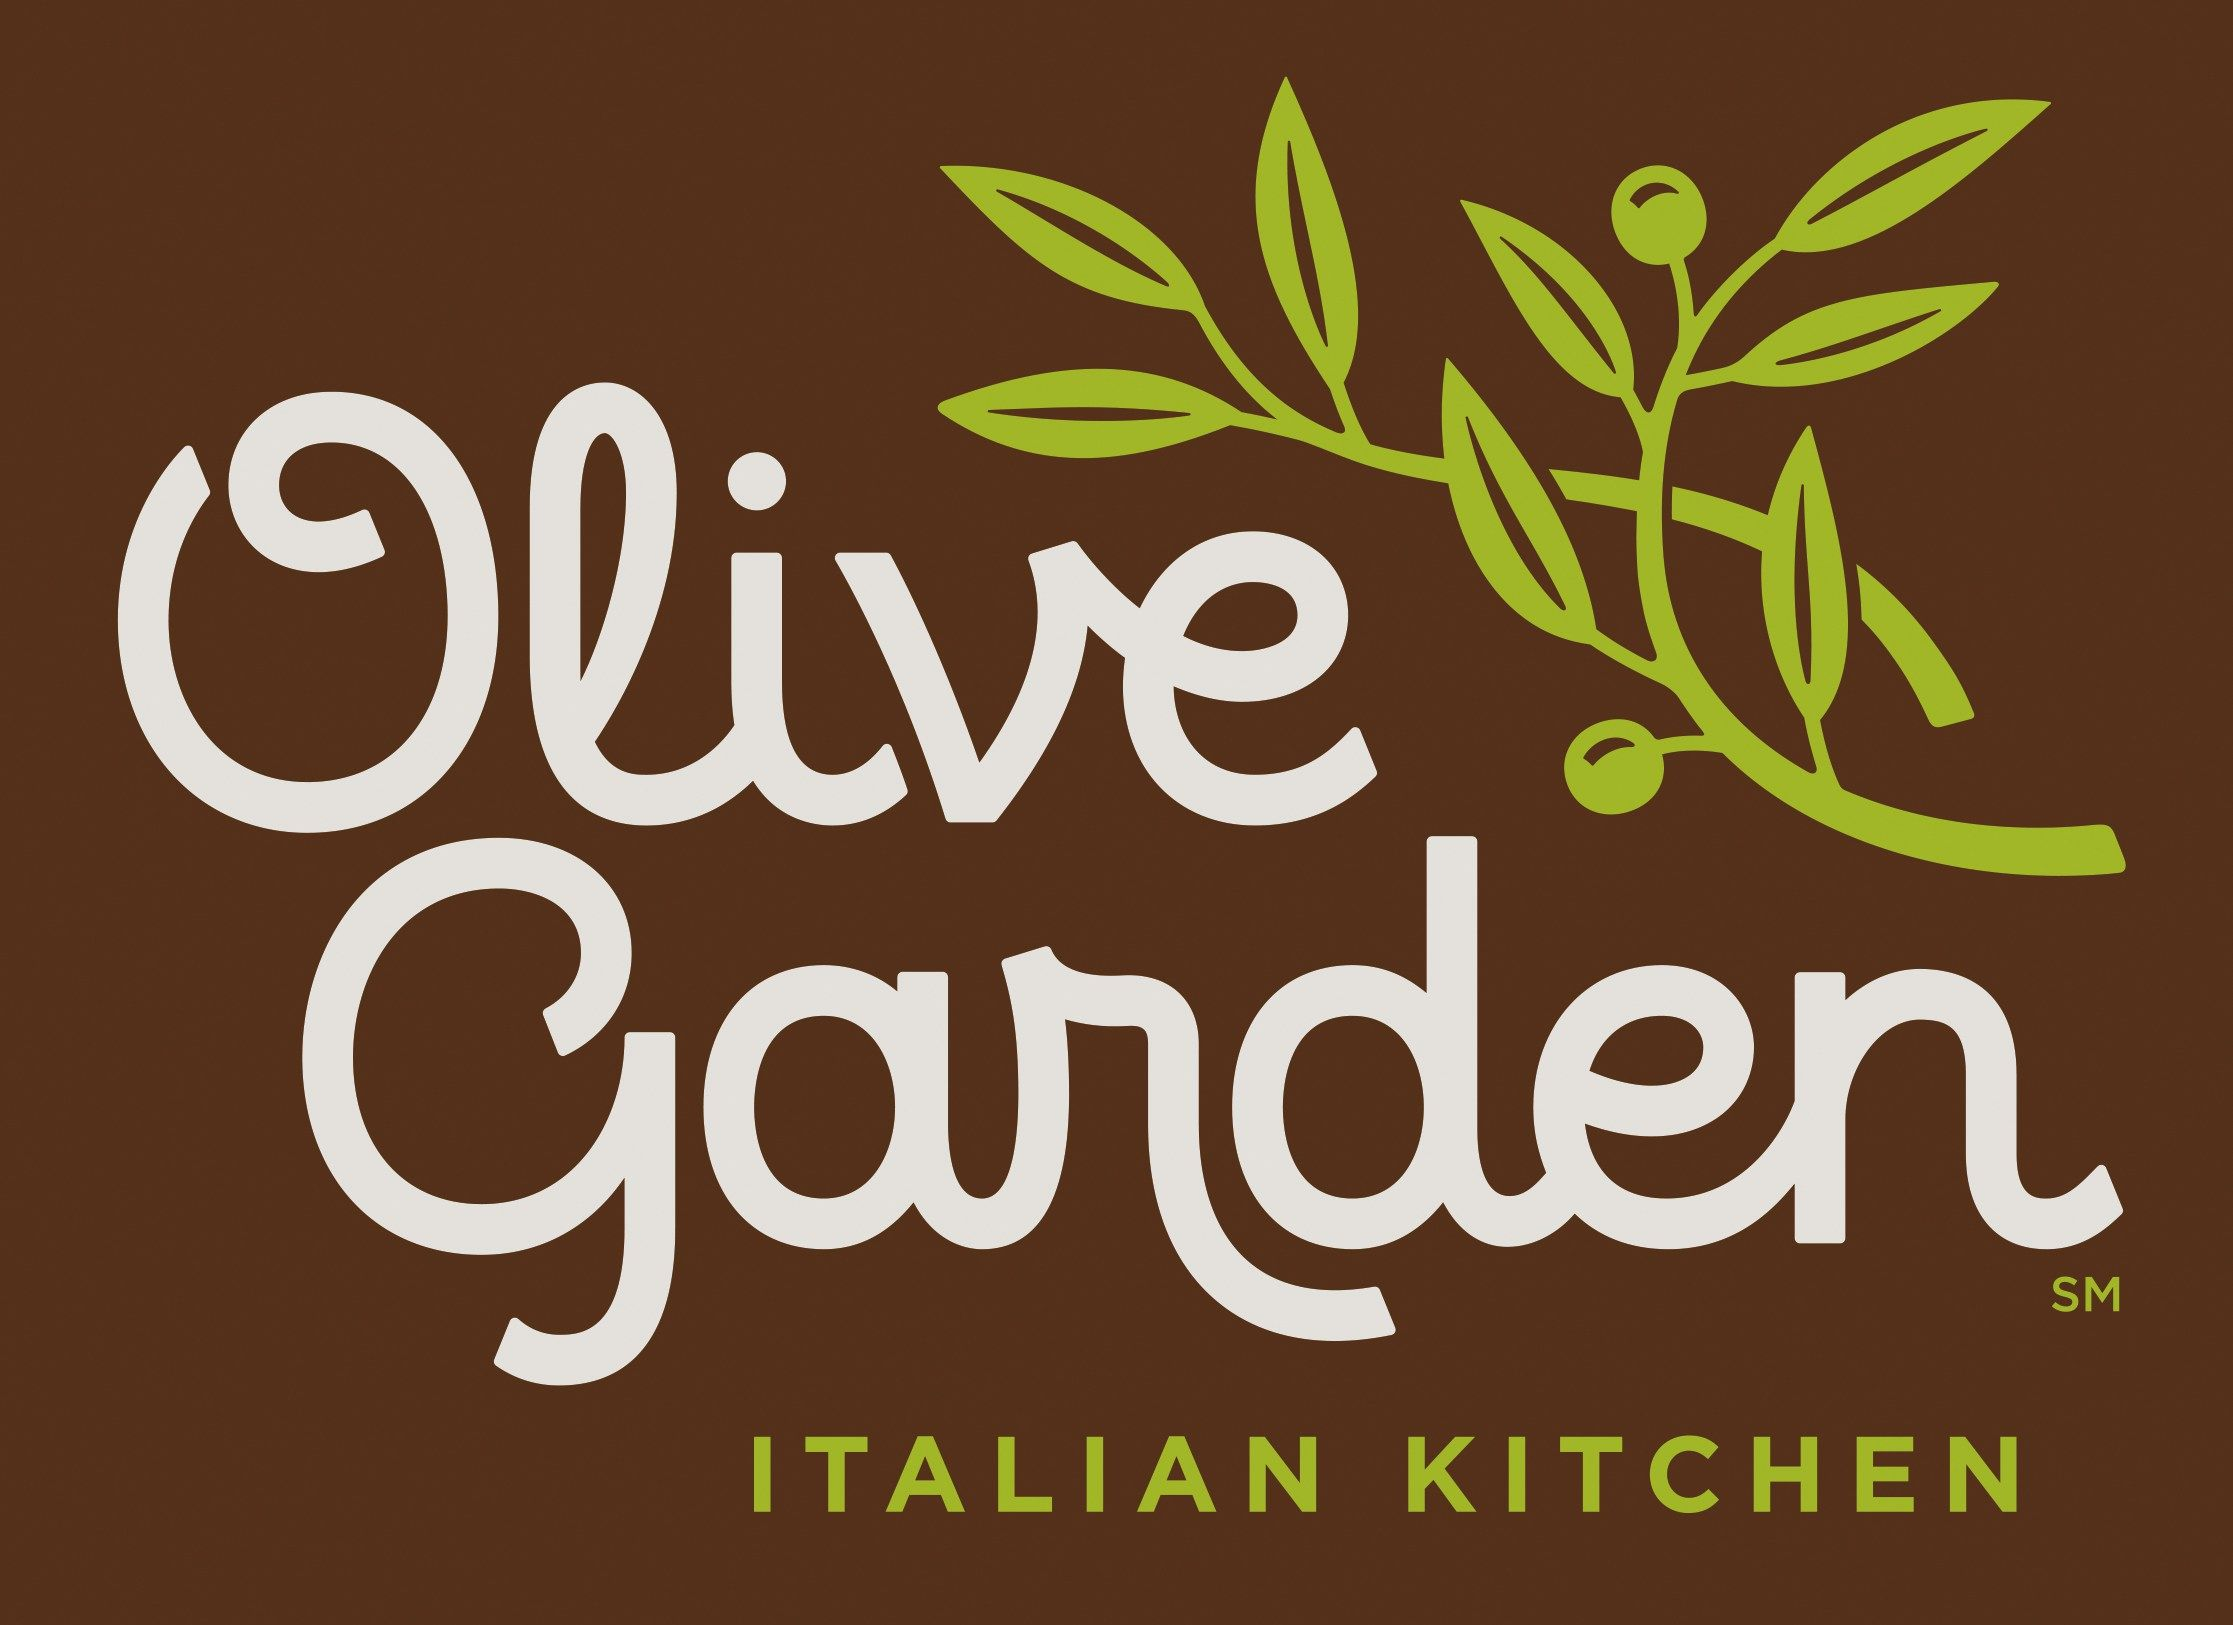 Can I eat low sodium at Olive Garden? Find Out at www